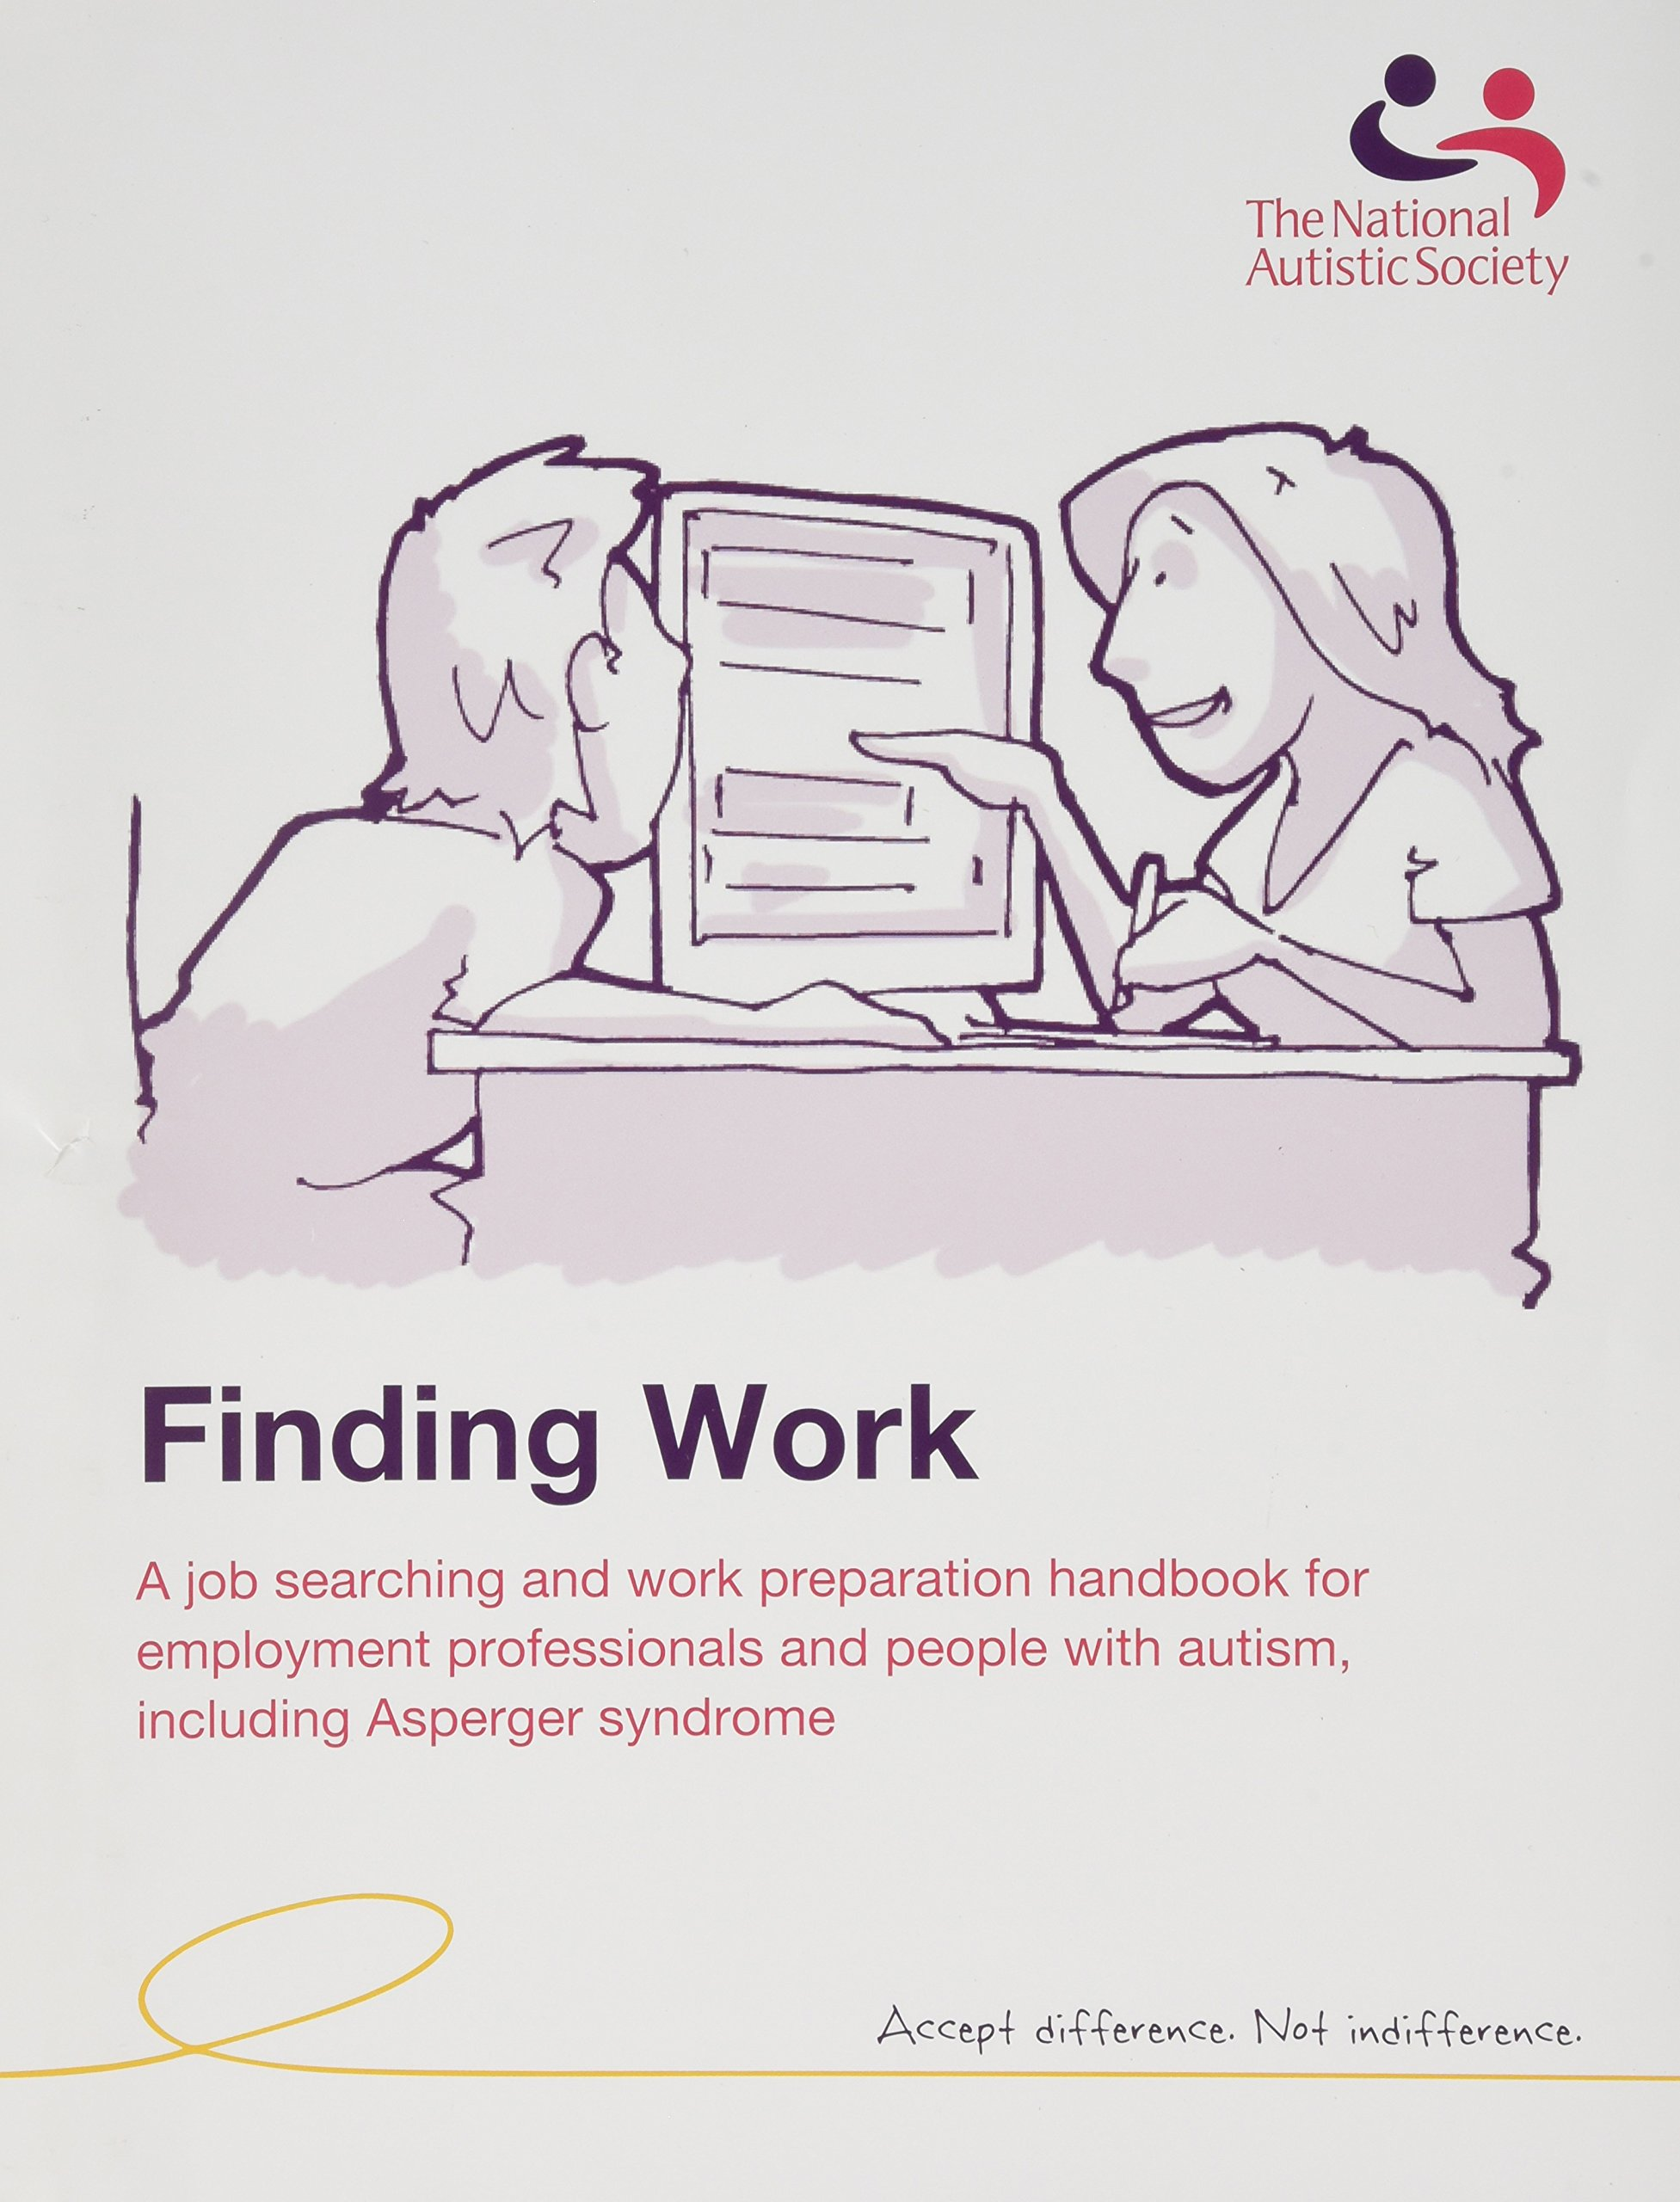 Finding work a toolkit Amazon National Autistic Society